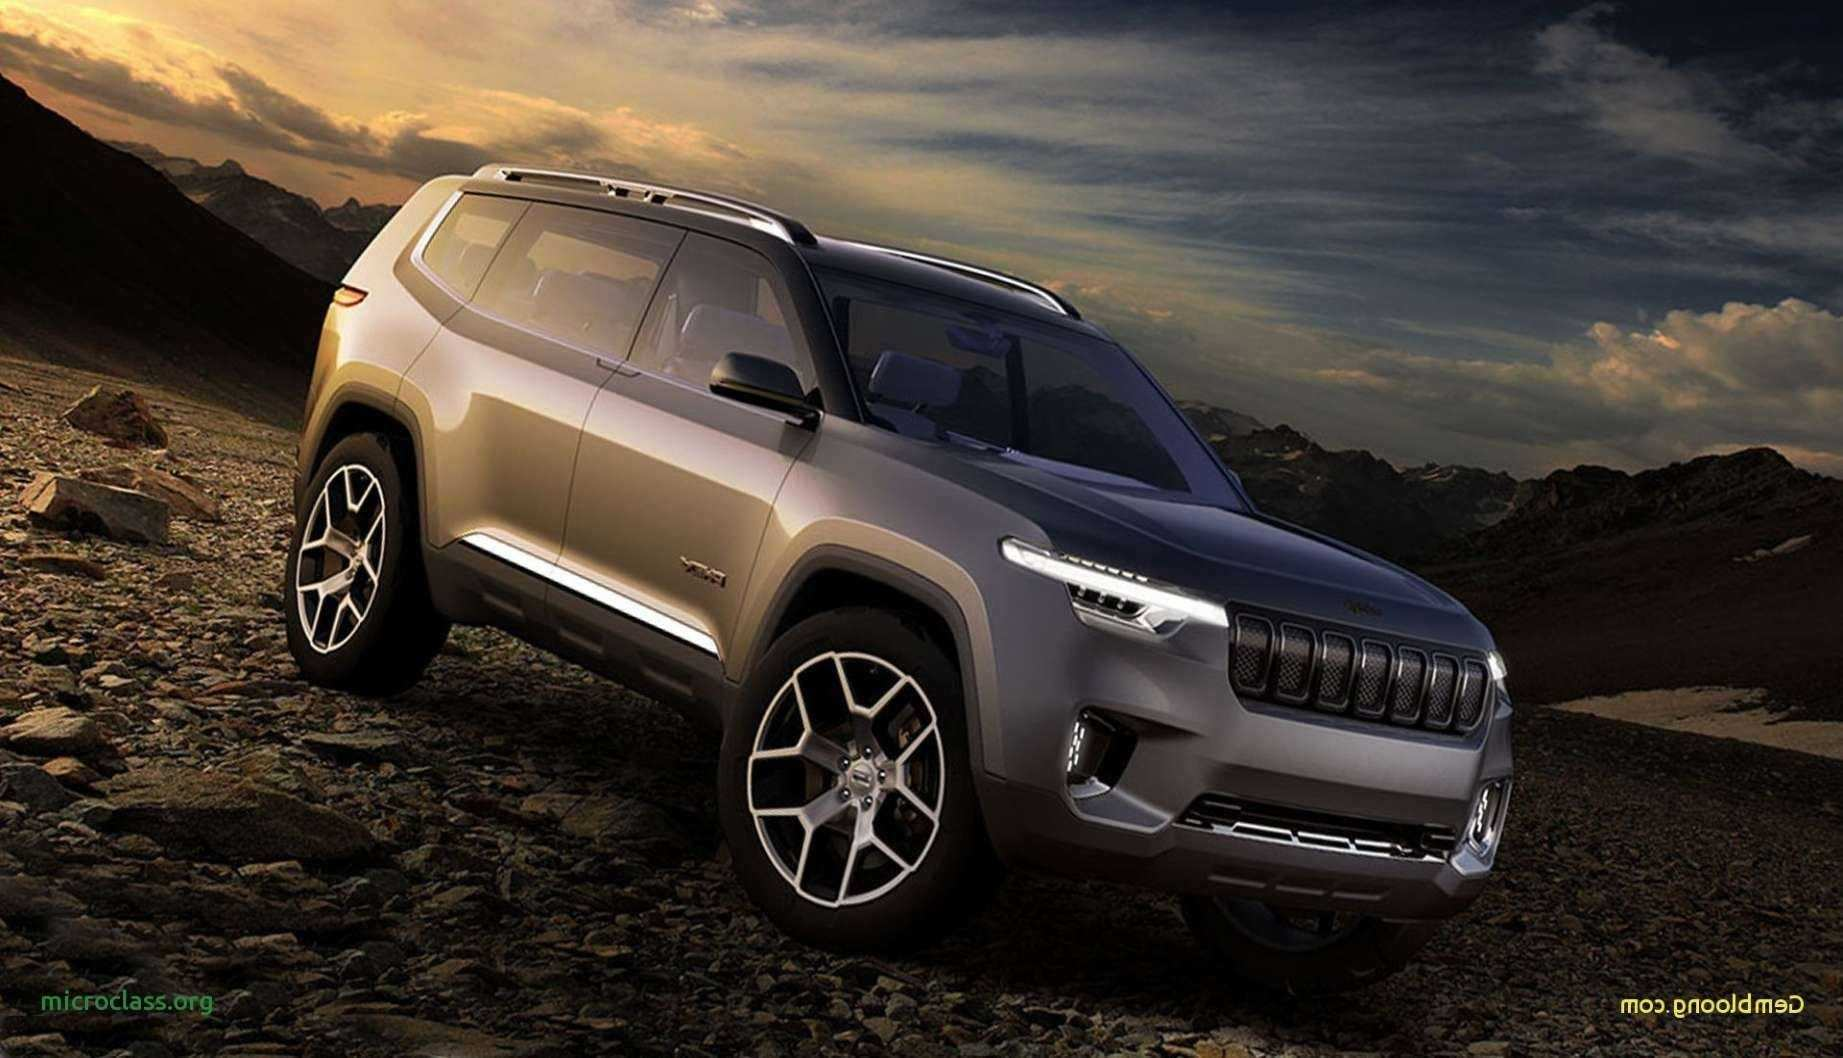 43 All New Jeep Cherokee 2020 Interior with Jeep Cherokee 2020